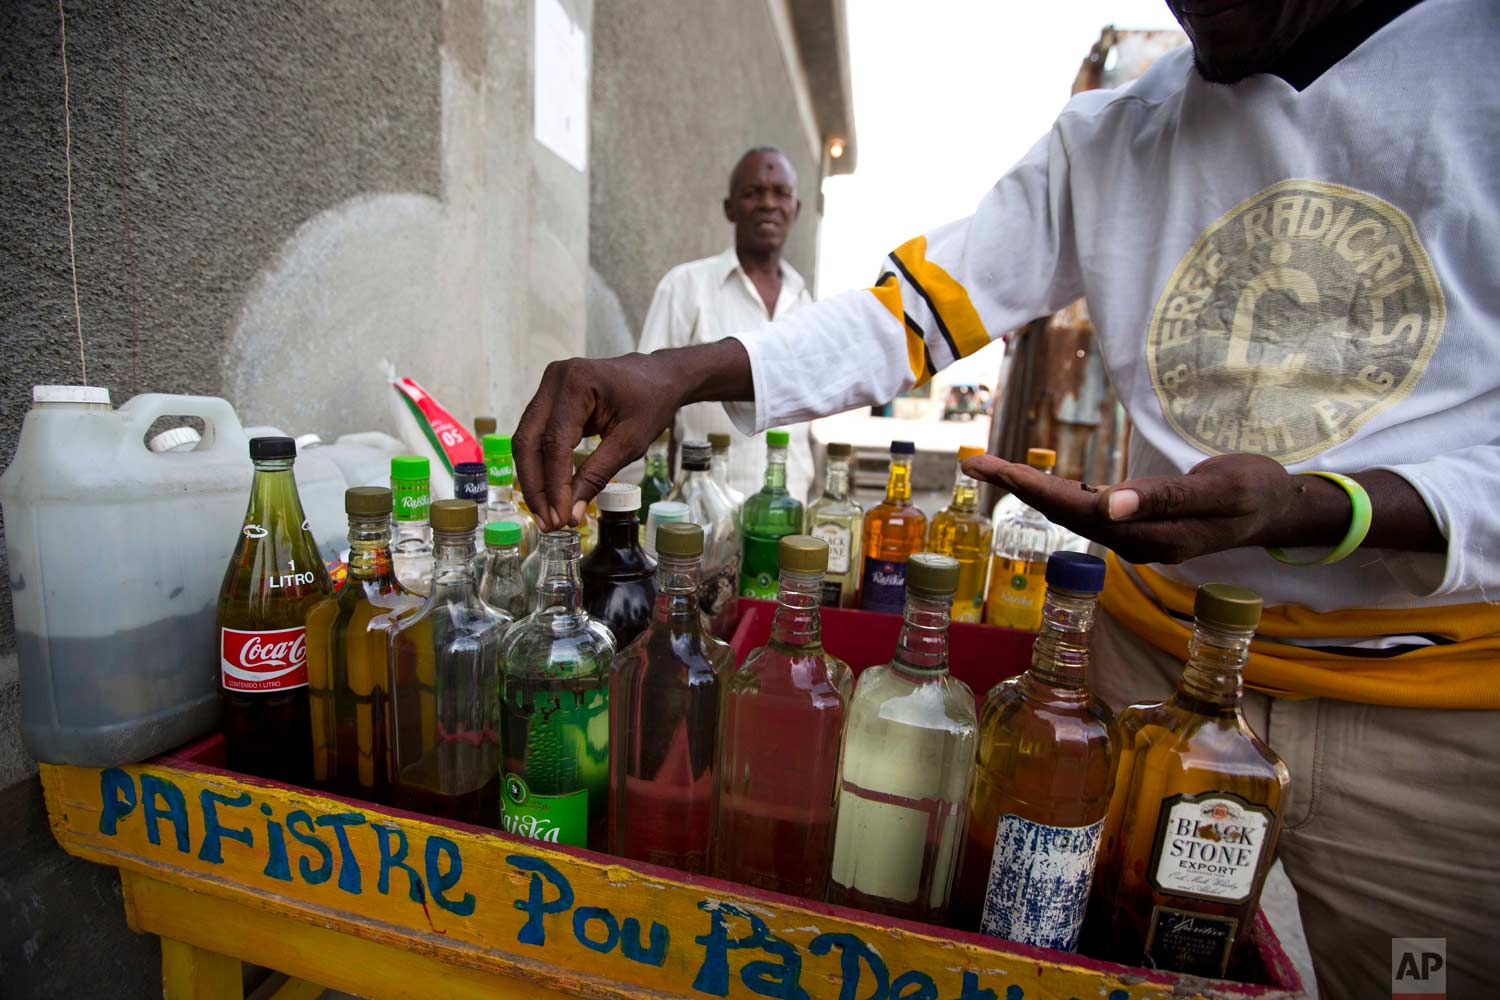 Eddy Lecty, who sells a sugar-based alcoholic drink known as clairin, adds cloves to spice up one of his bottles in the Cite Soleil area of Port-au-Prince, Haiti, Tuesday, July 11, 2017. Individual retailers who add flavors with herbs or fruit to the less refined version of rum reuse bottles carrying other labels. (AP Photo/Dieu Nalio Chery)